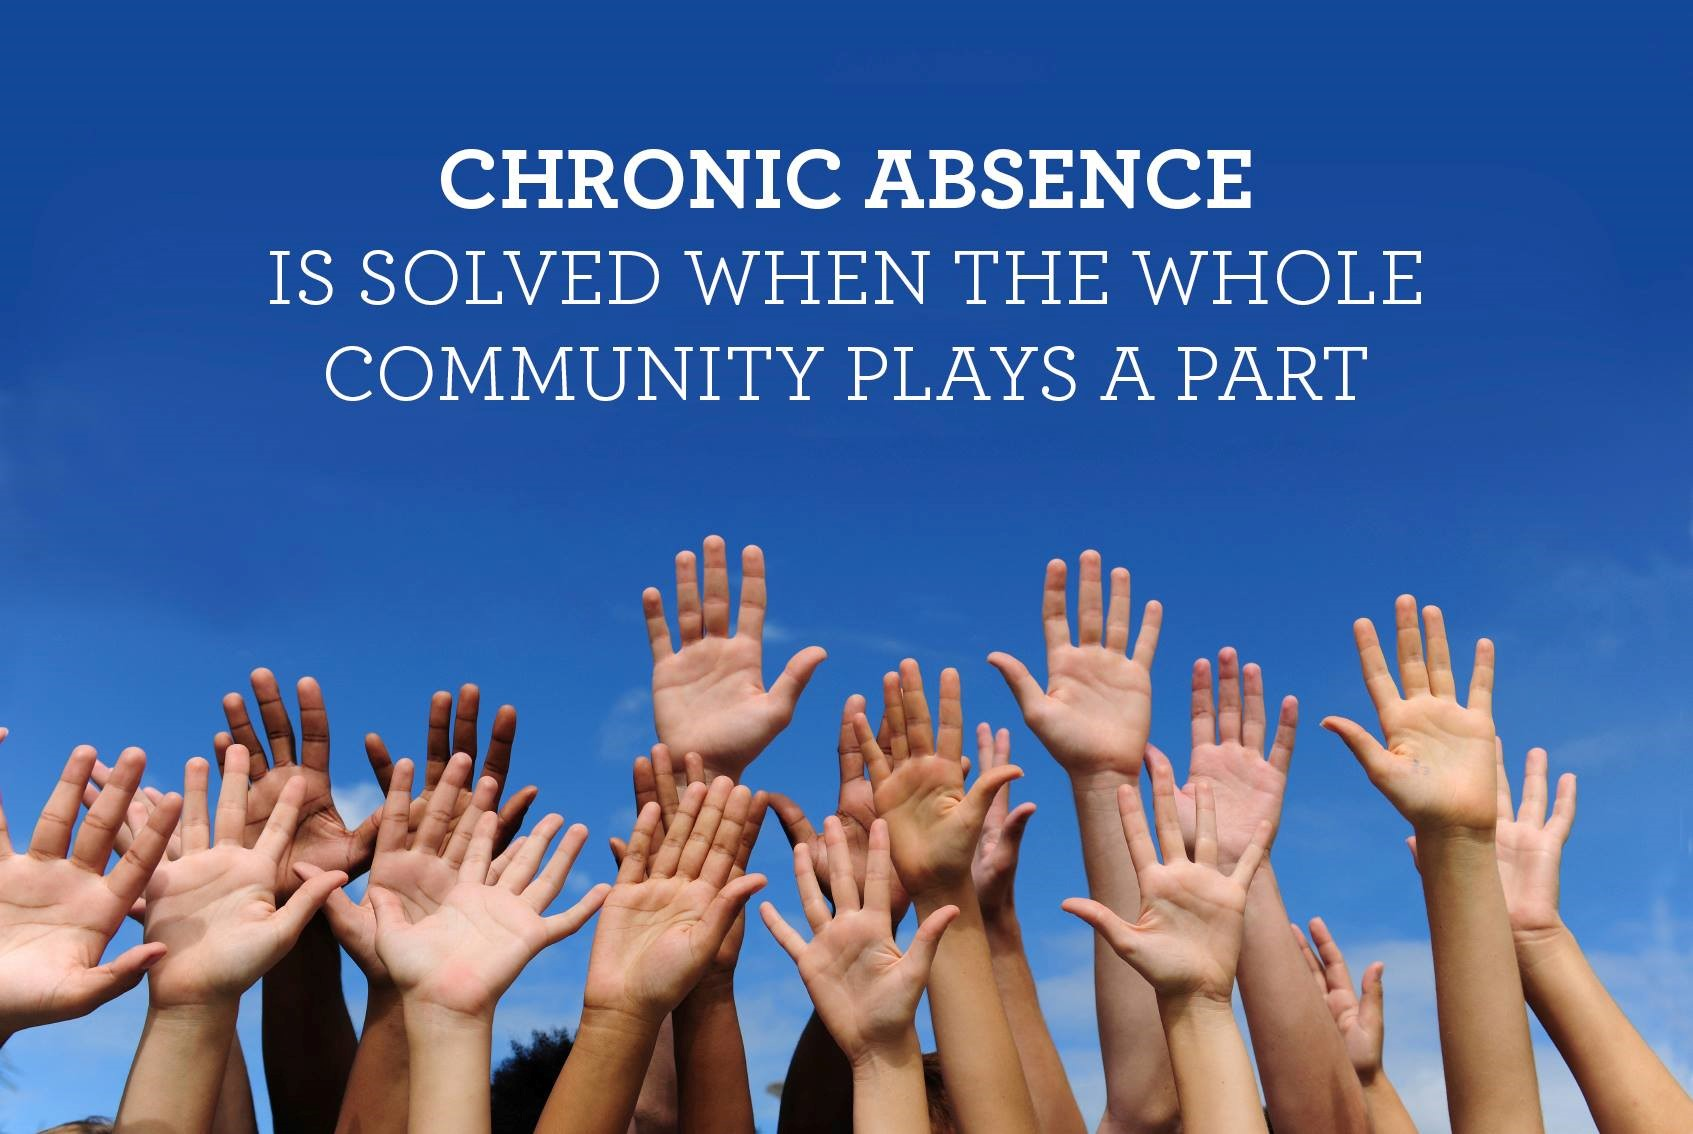 To learn more about the issue of chronic absence and how to solve it, check out Attendance Works, an America's Promise partner.